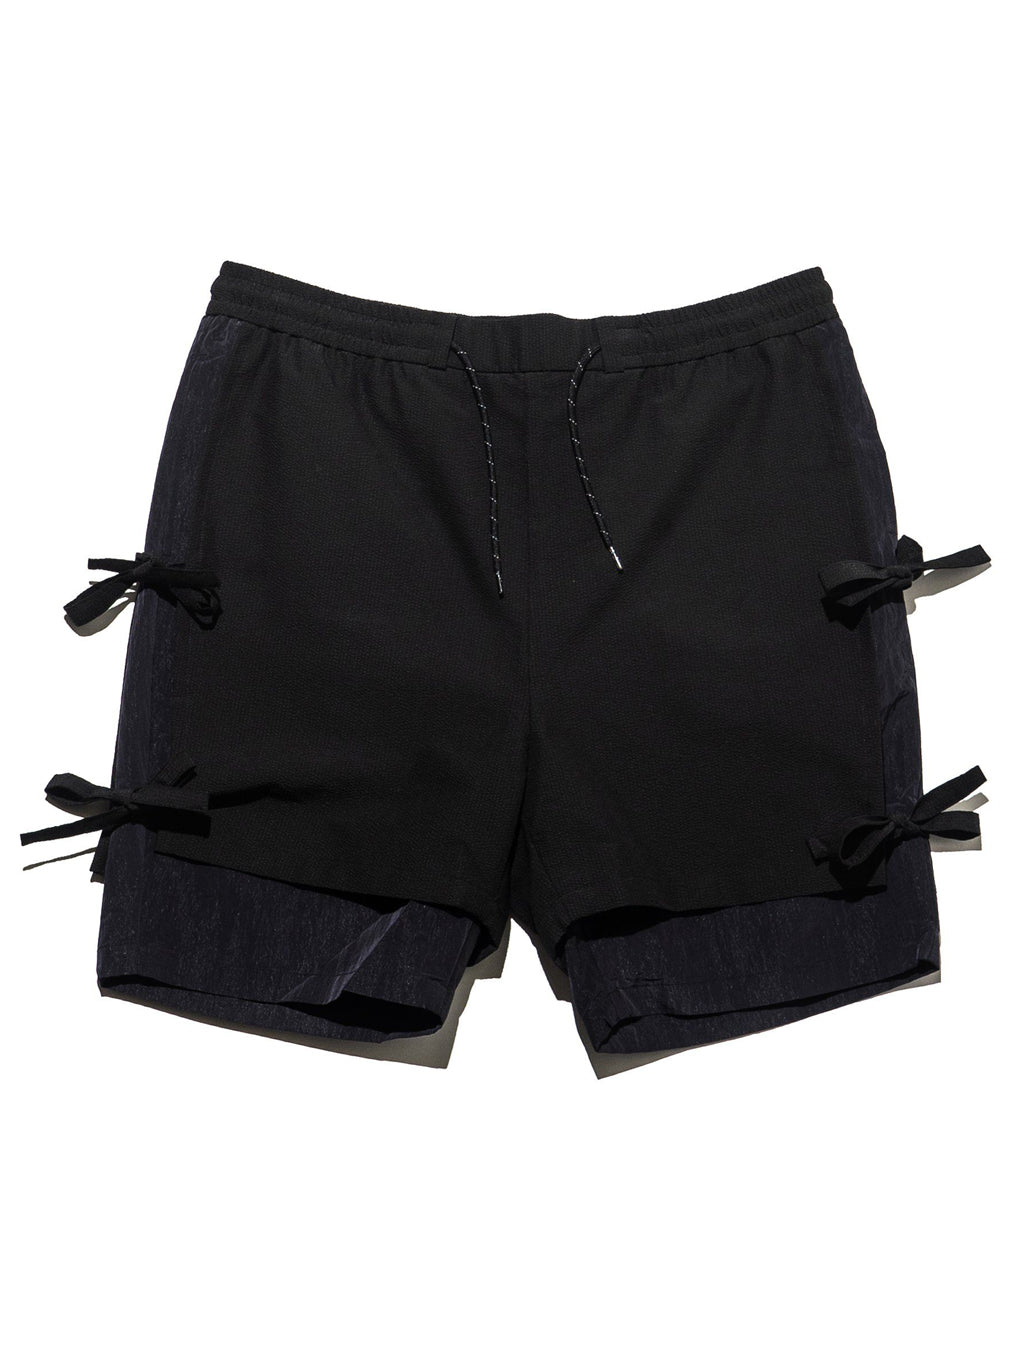 Black Two Layers Shorts